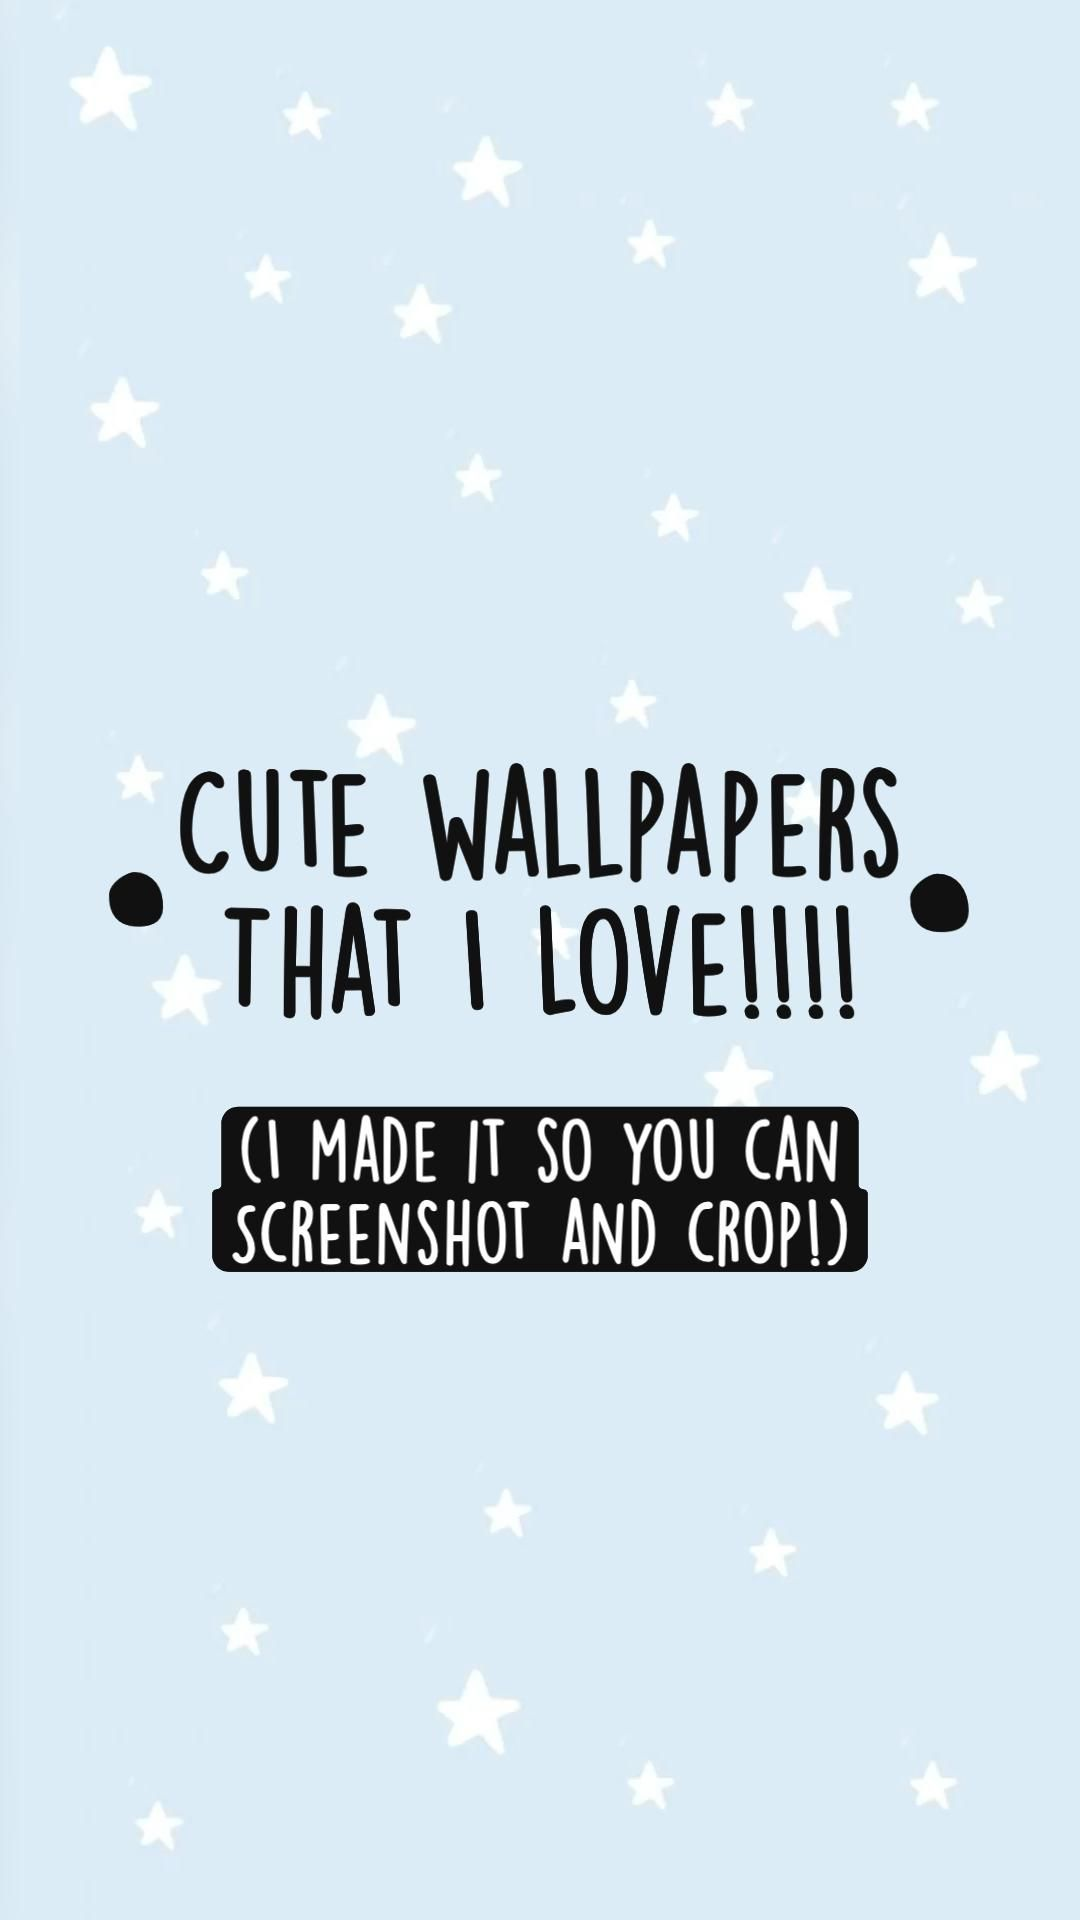 •cute wallpapers that I love!•